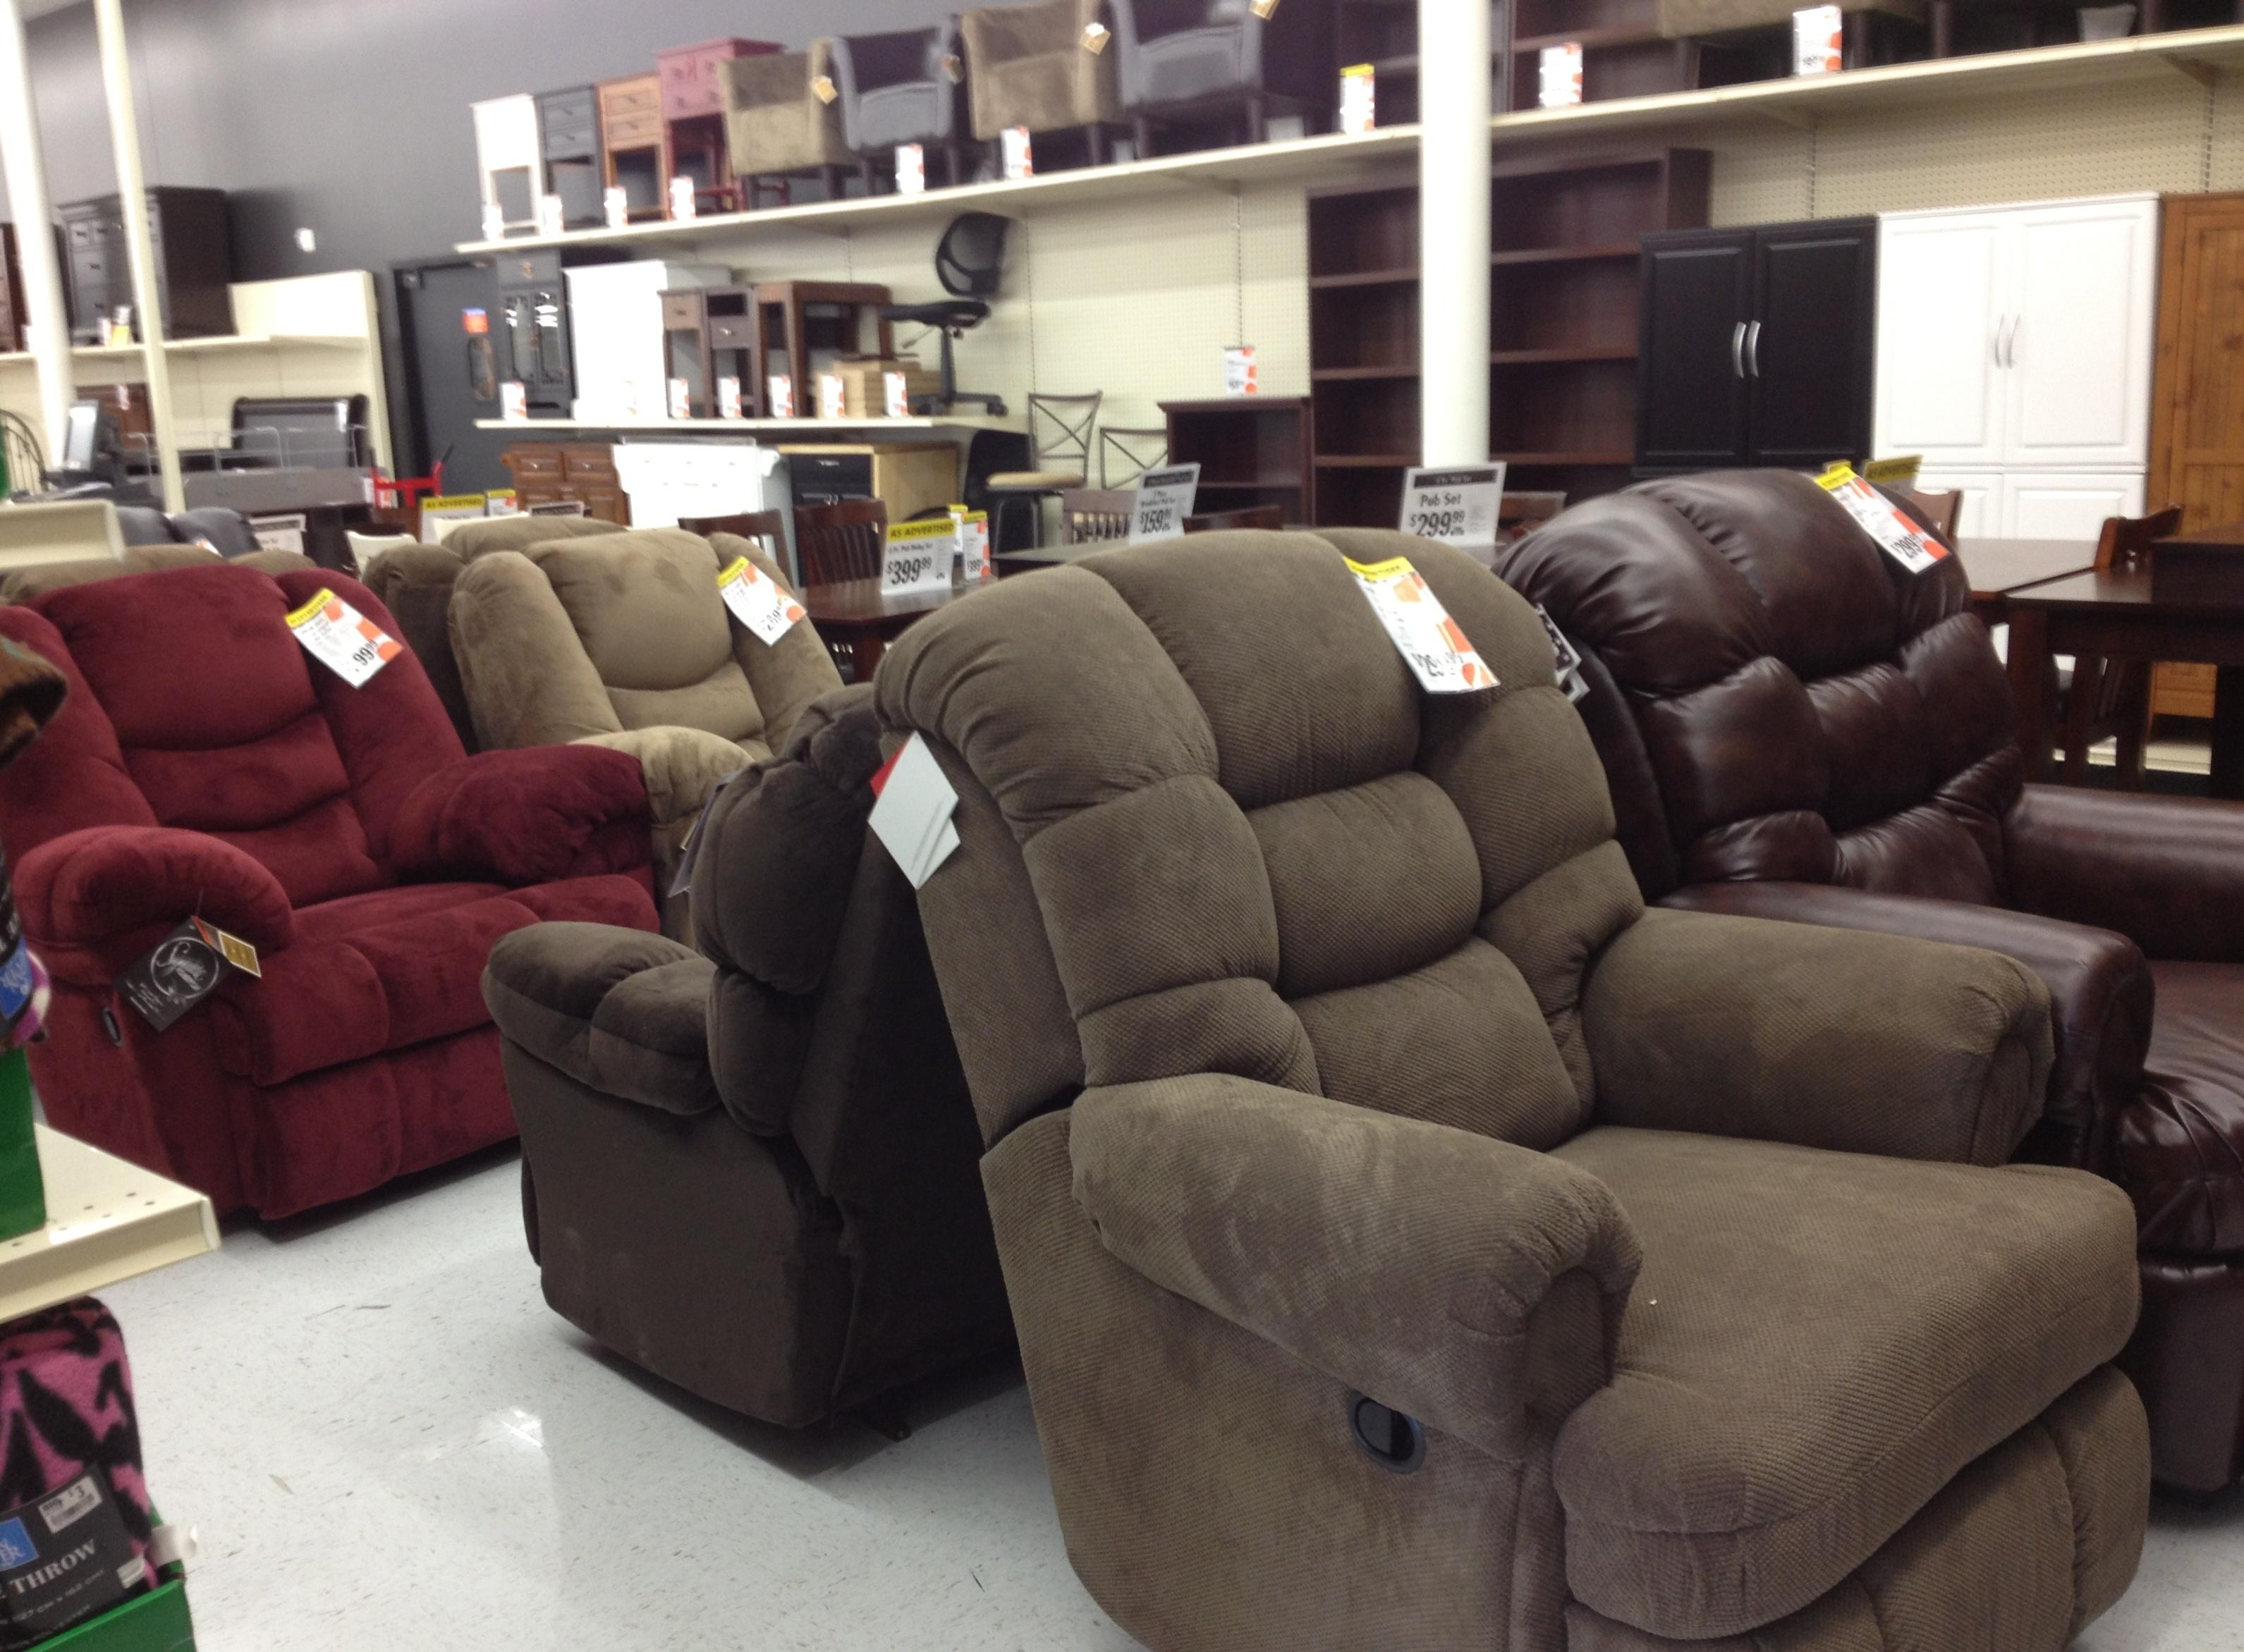 Simmons Sofas At Big Lots | Tehranmix Decoration Within Big Lots Simmons Furniture (View 3 of 20)